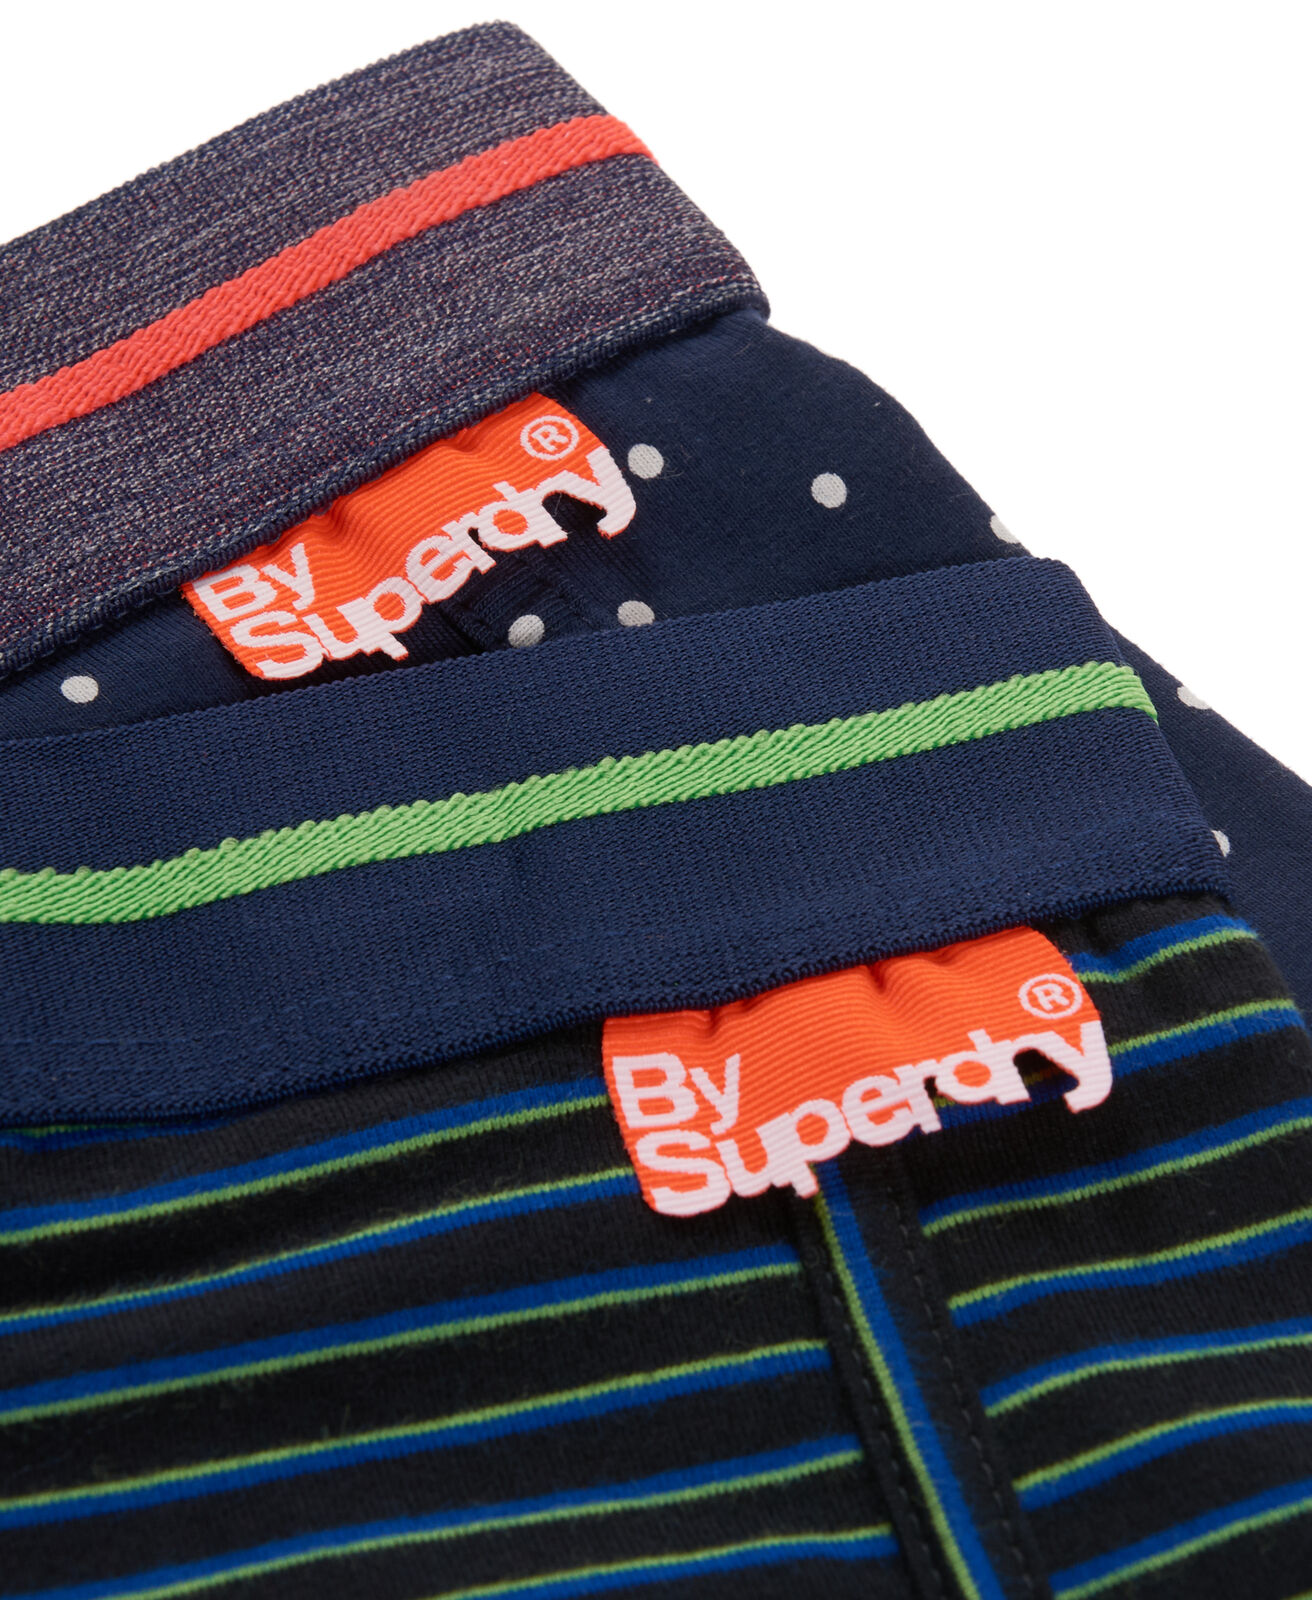 Mens-Superdry-Sport-Boxers-Double-Pack-Newport-Stripe-Green thumbnail 4